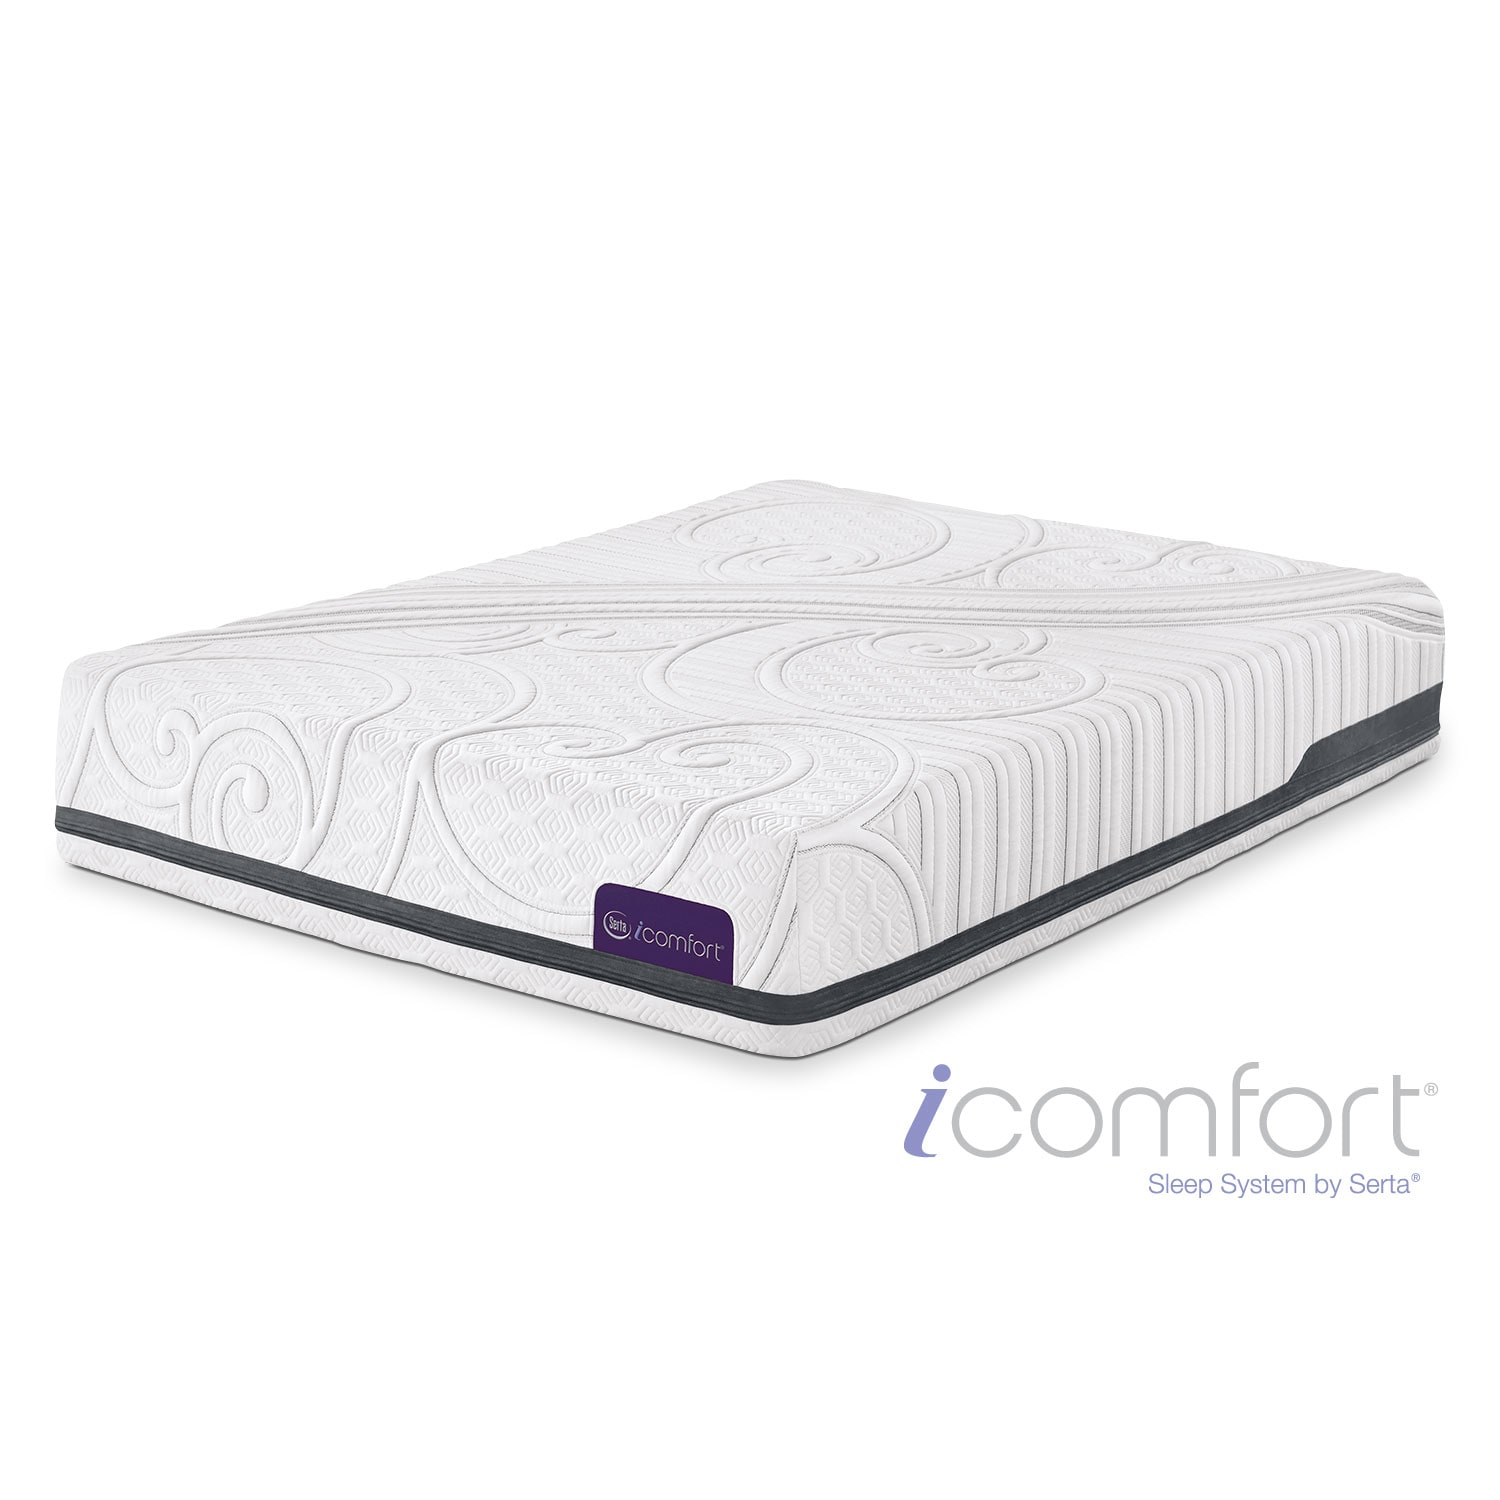 Mattresses and Bedding - Prodigy III California King Mattress